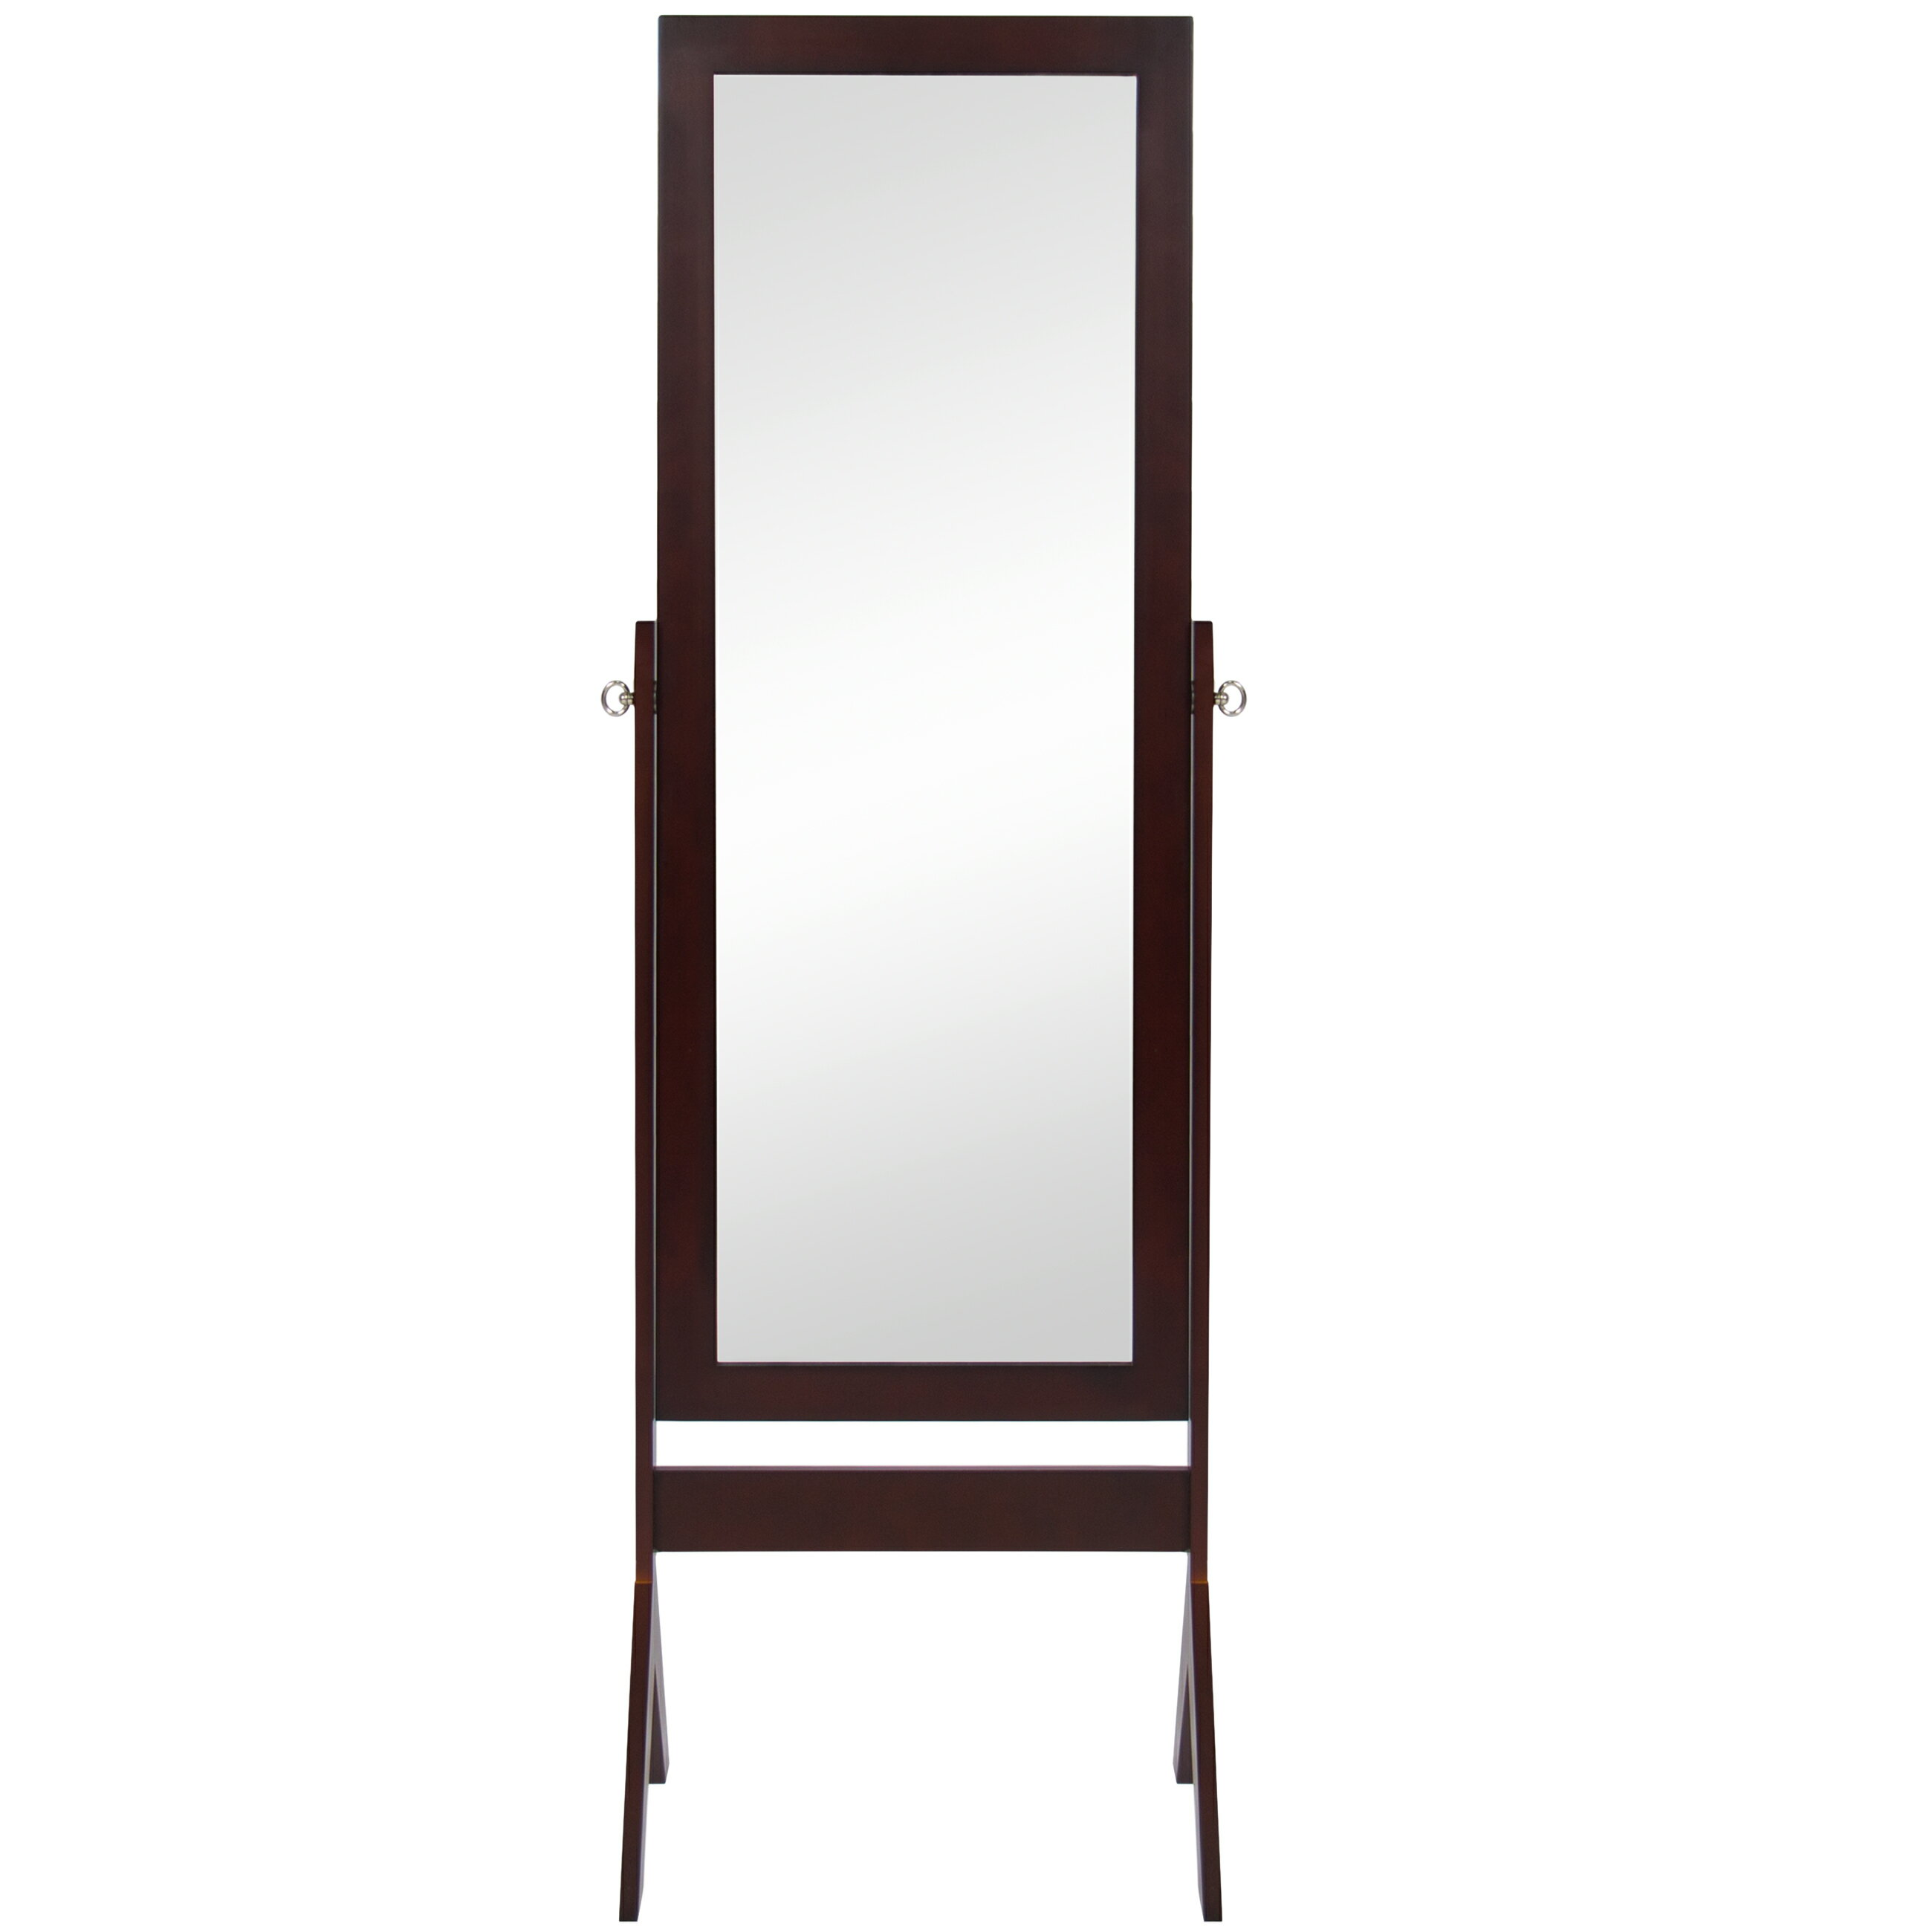 Best Choice Products Cheval Floor Mirror Bedroom Home Furniture- Espresso Brown 2